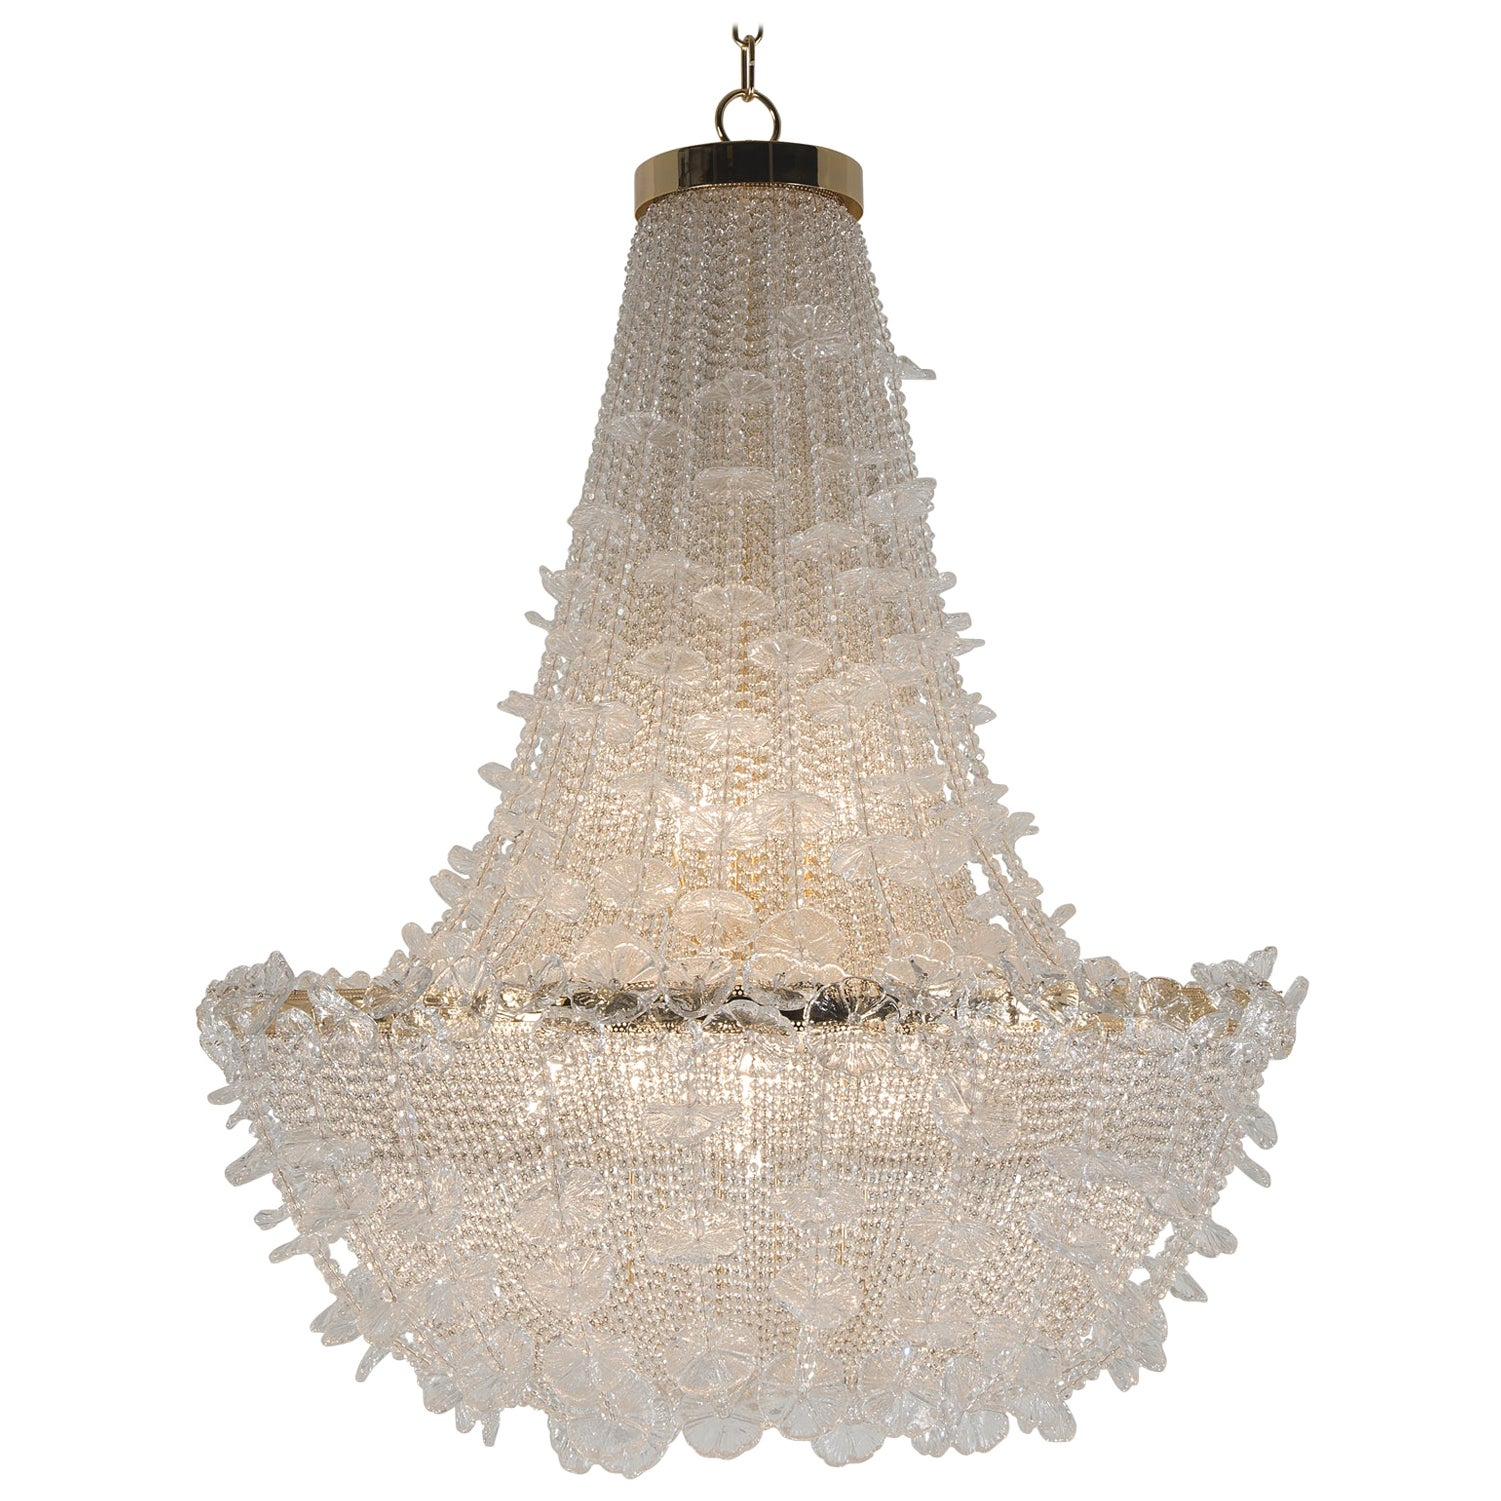 21st Century Margherita Crystal and Blown Glass Chandelier by Patrizia Garganti